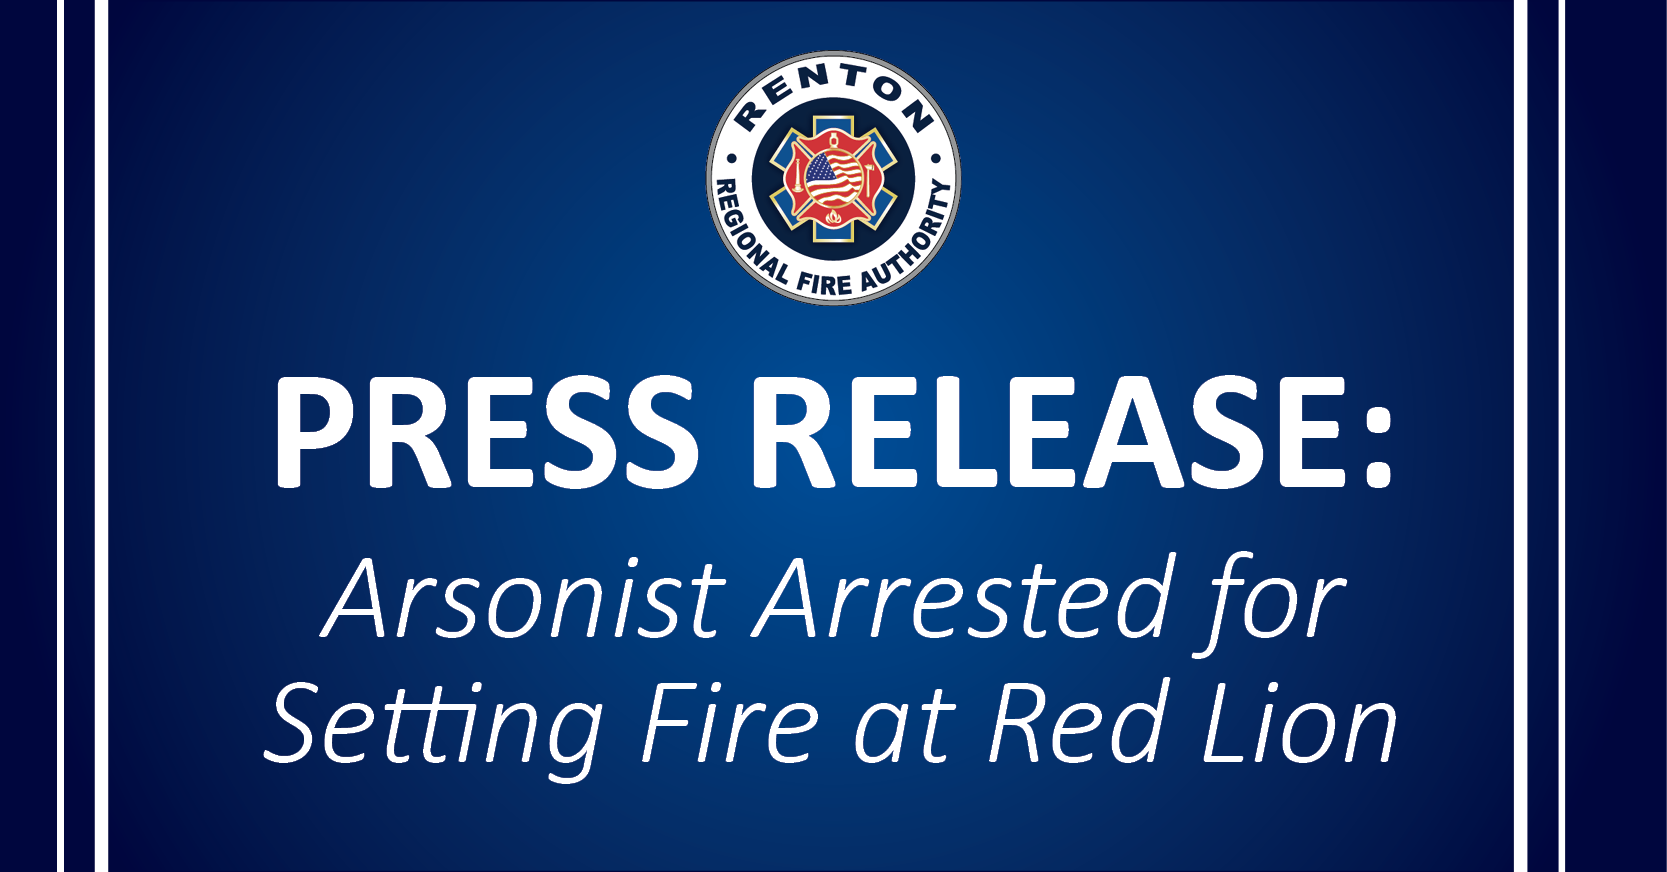 Arsonist Arrested for Setting Fire at Red Lion